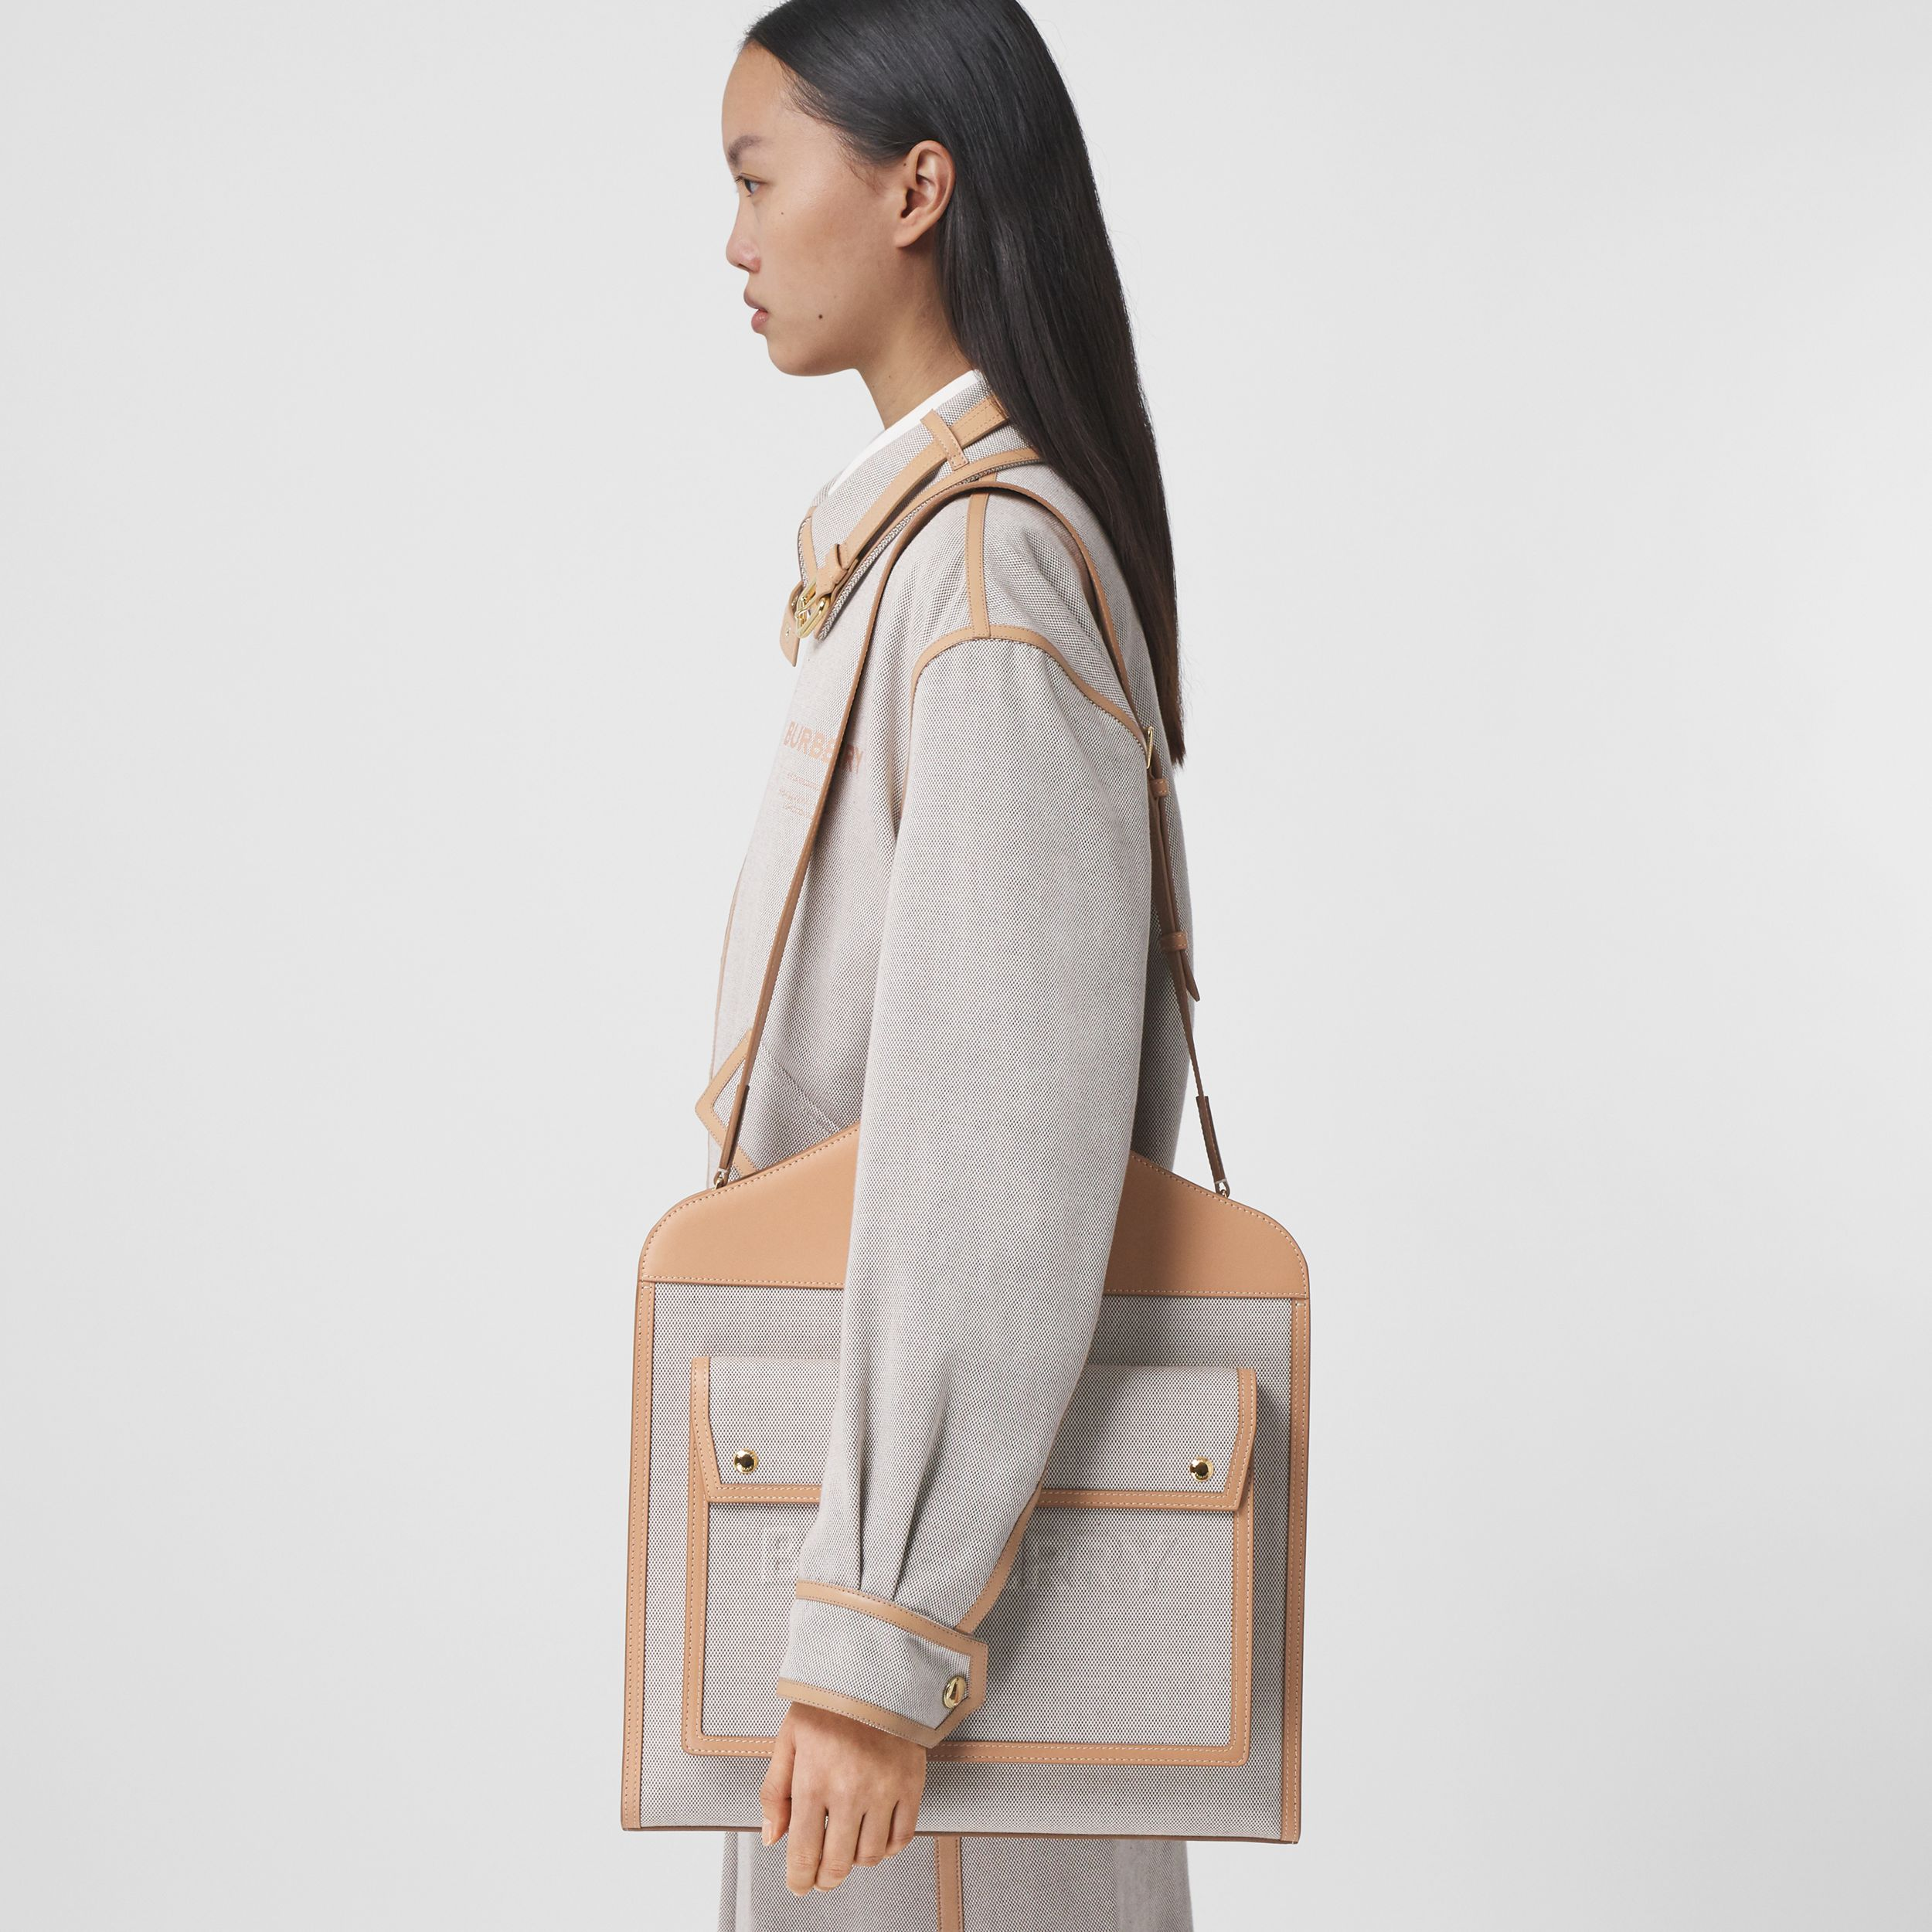 Medium Two-tone Canvas and Leather Pocket Bag in Soft Fawn/warm Sand - Women | Burberry Hong Kong S.A.R. - 3